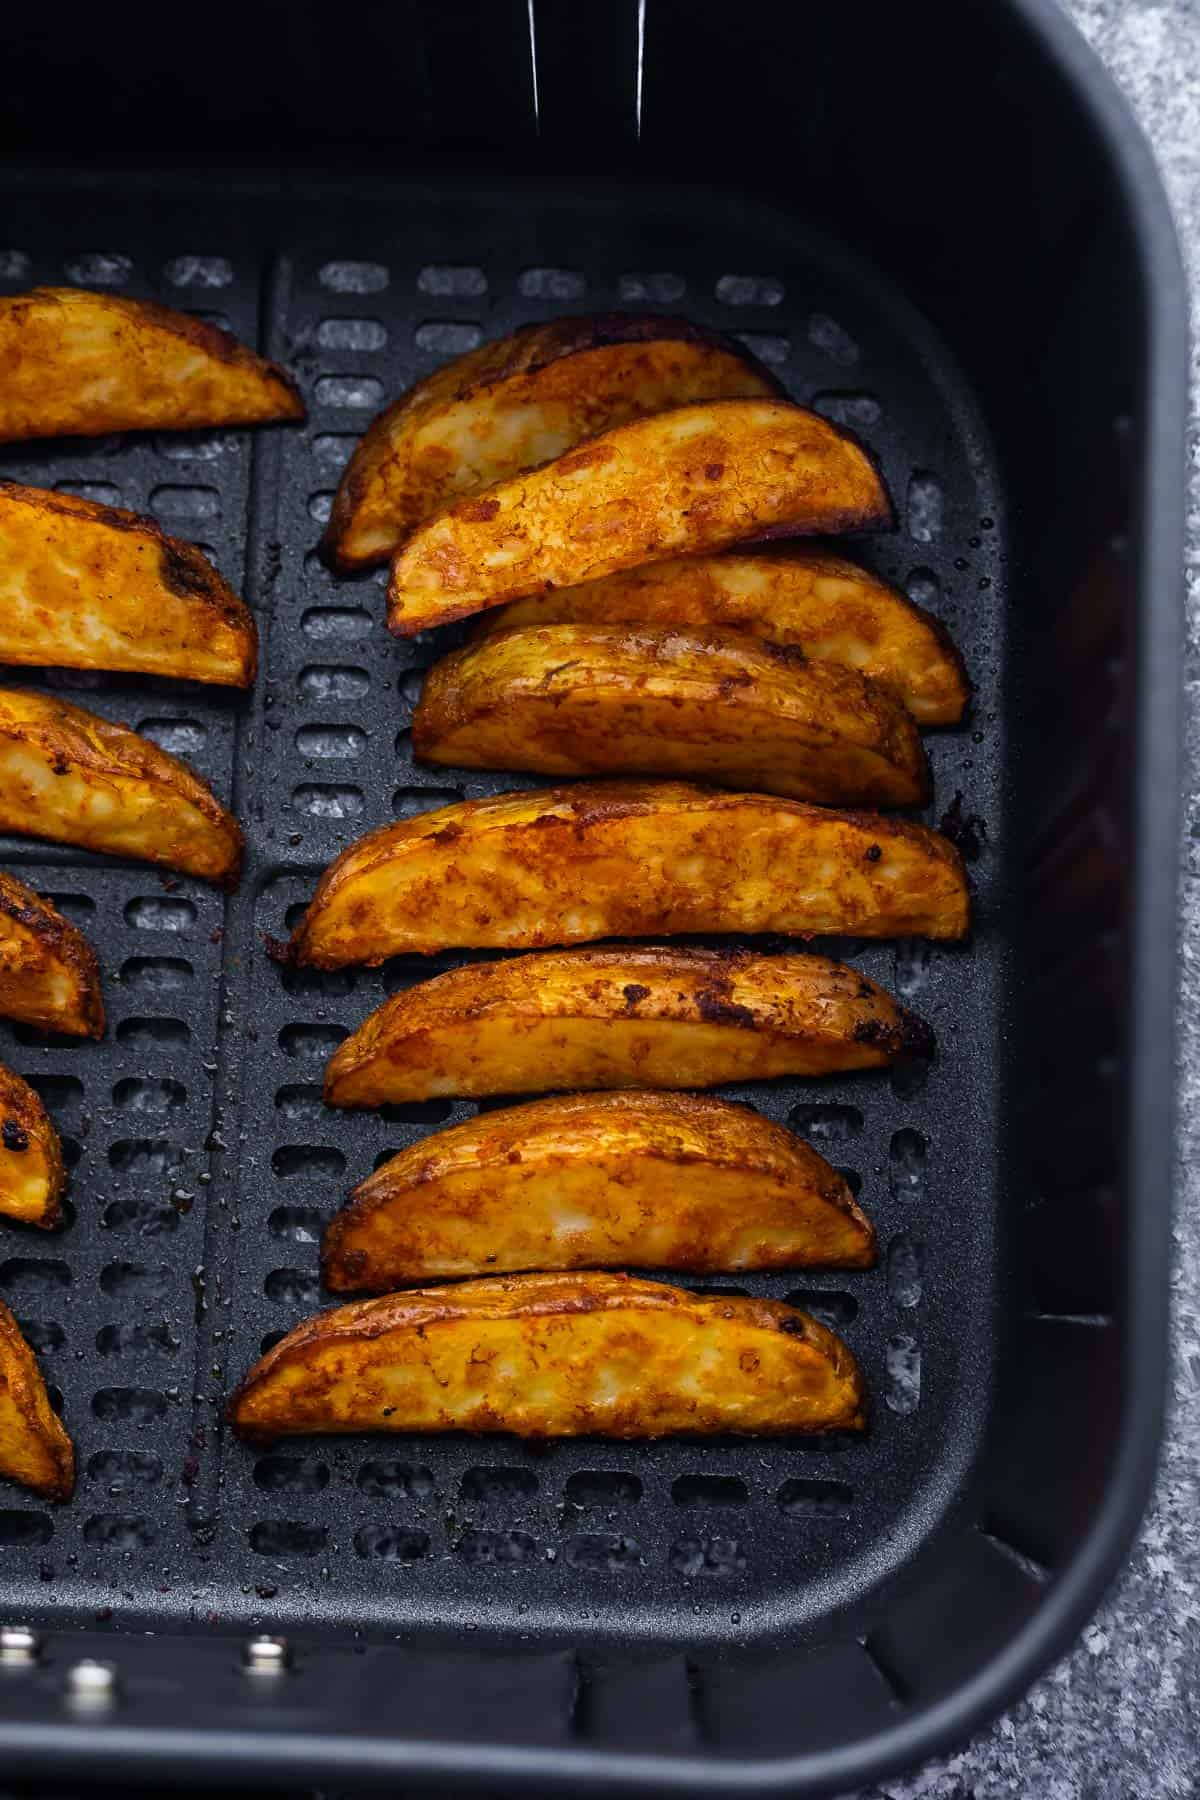 Baked potato wedges arranged in the frying basket